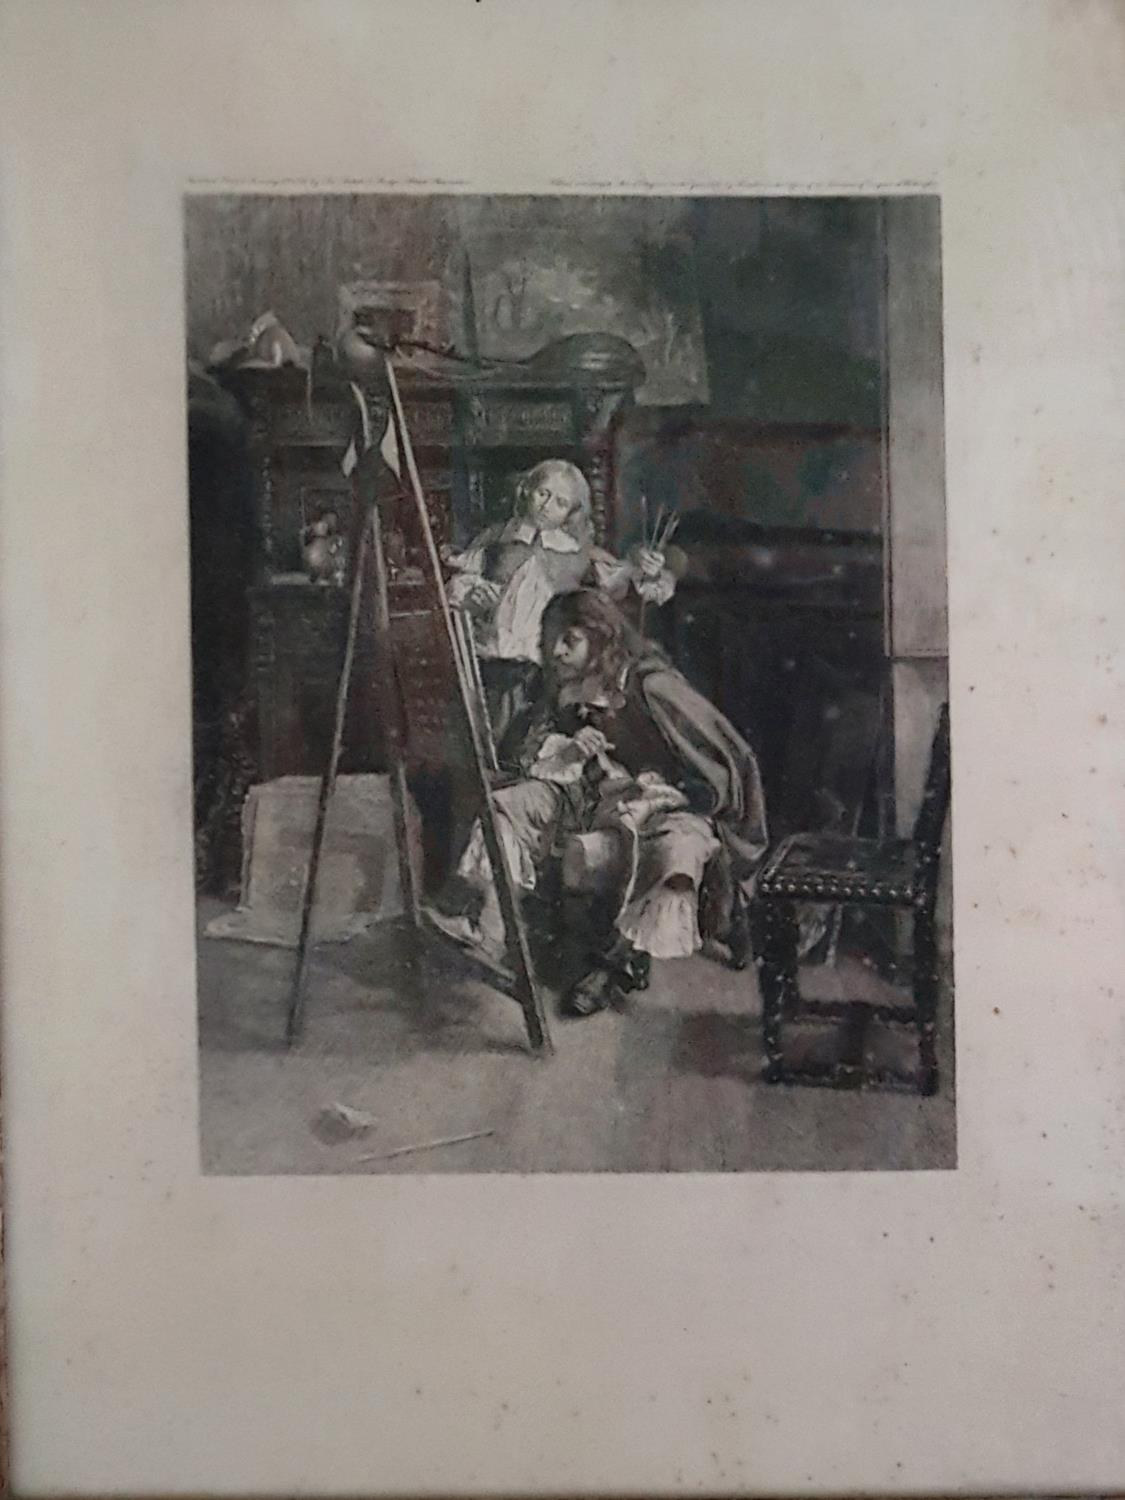 A 19th Century Engraving of a Military Officer by Felix (Ouvary) in original frame. - Image 3 of 3